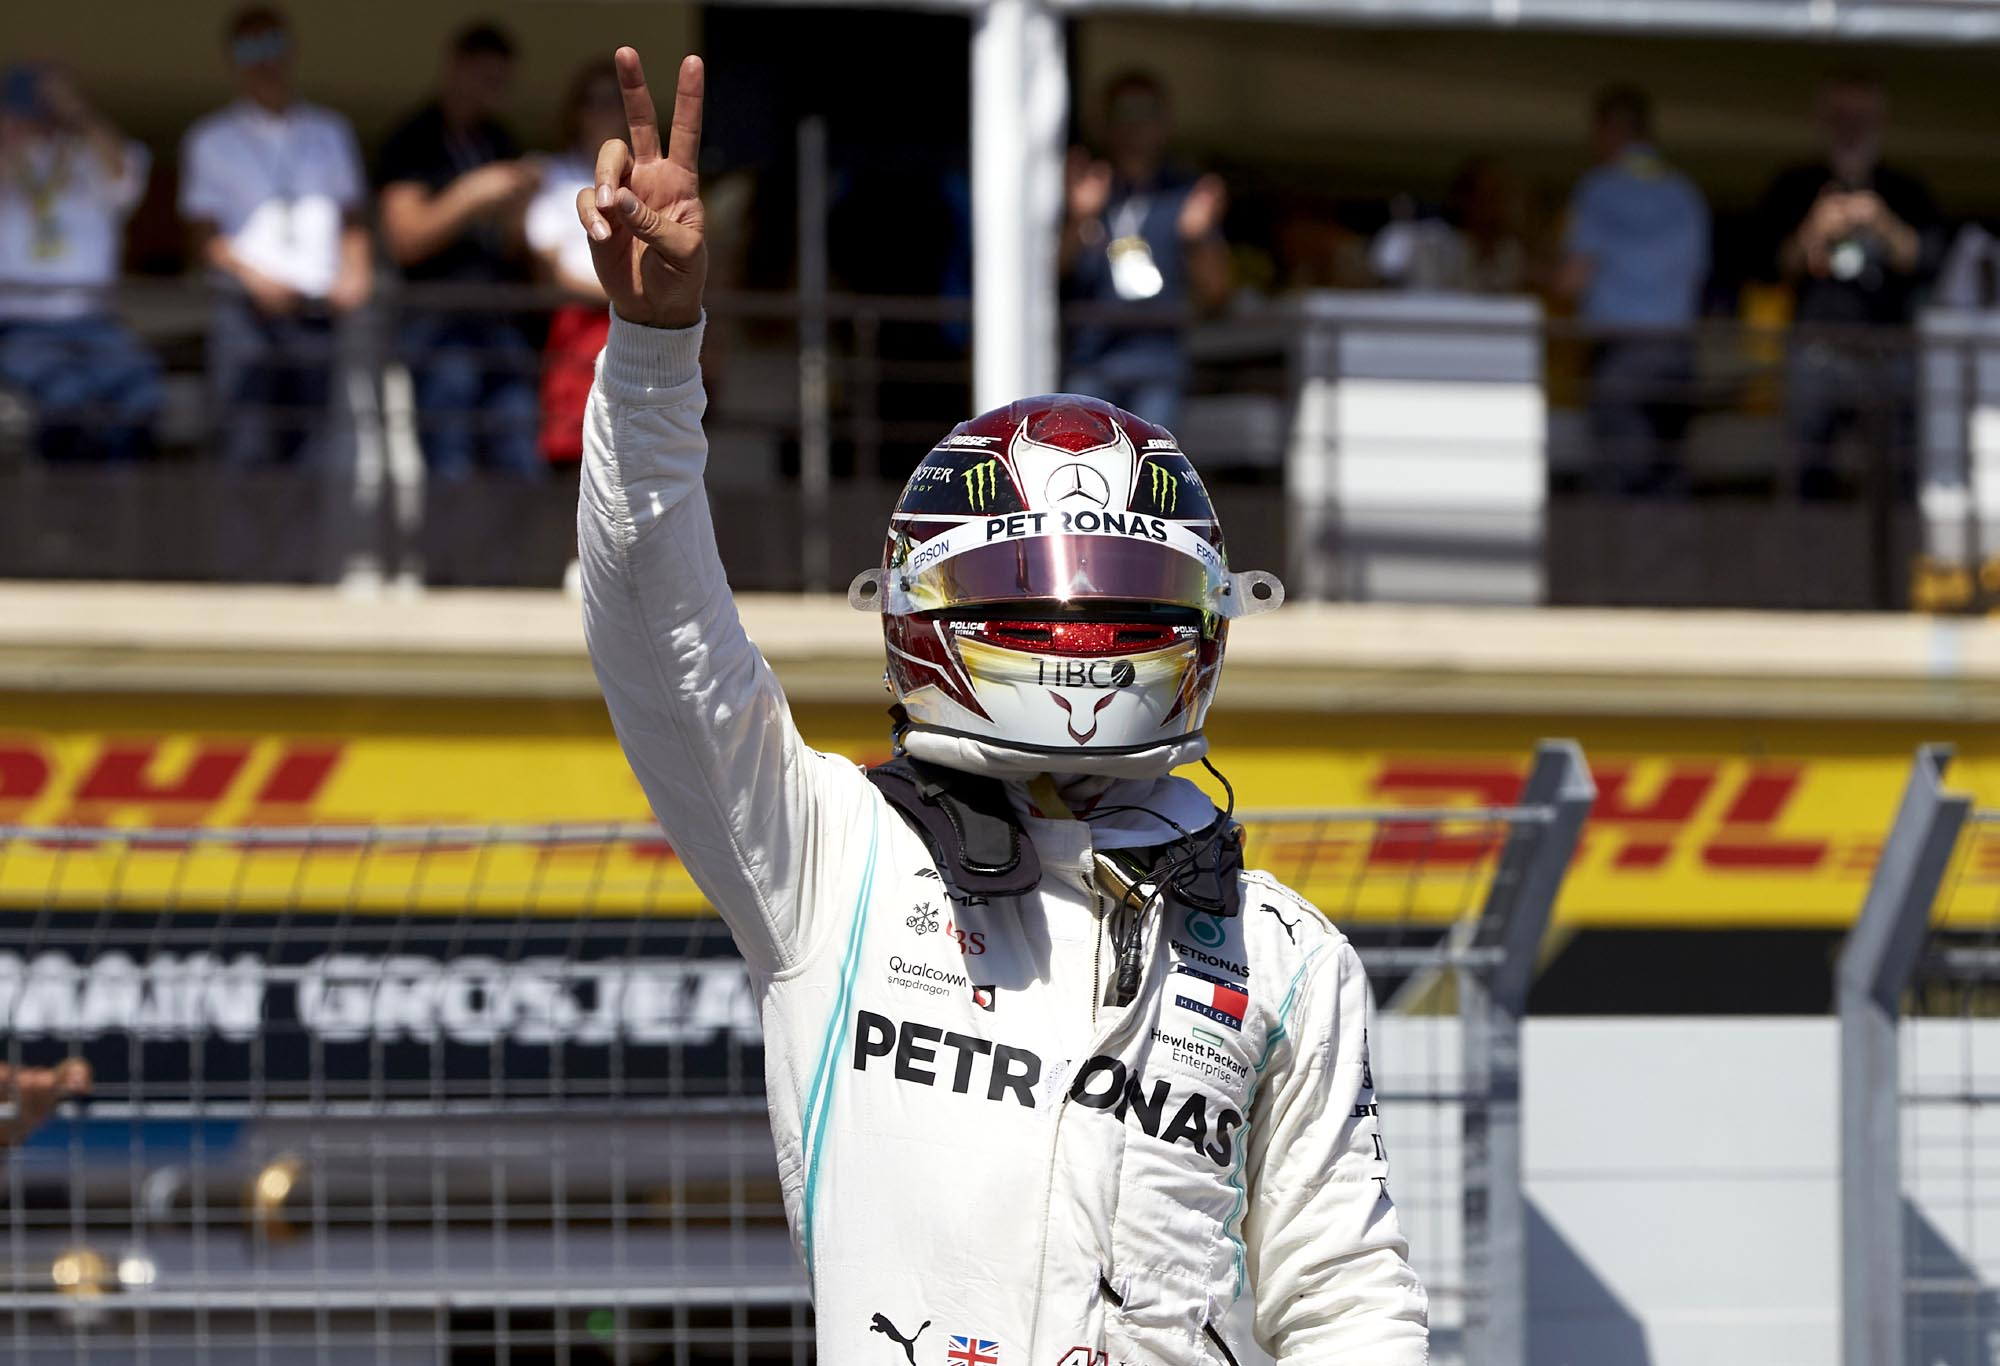 Lewis Hamilton celebrates at the 2019 French Grand Prix.